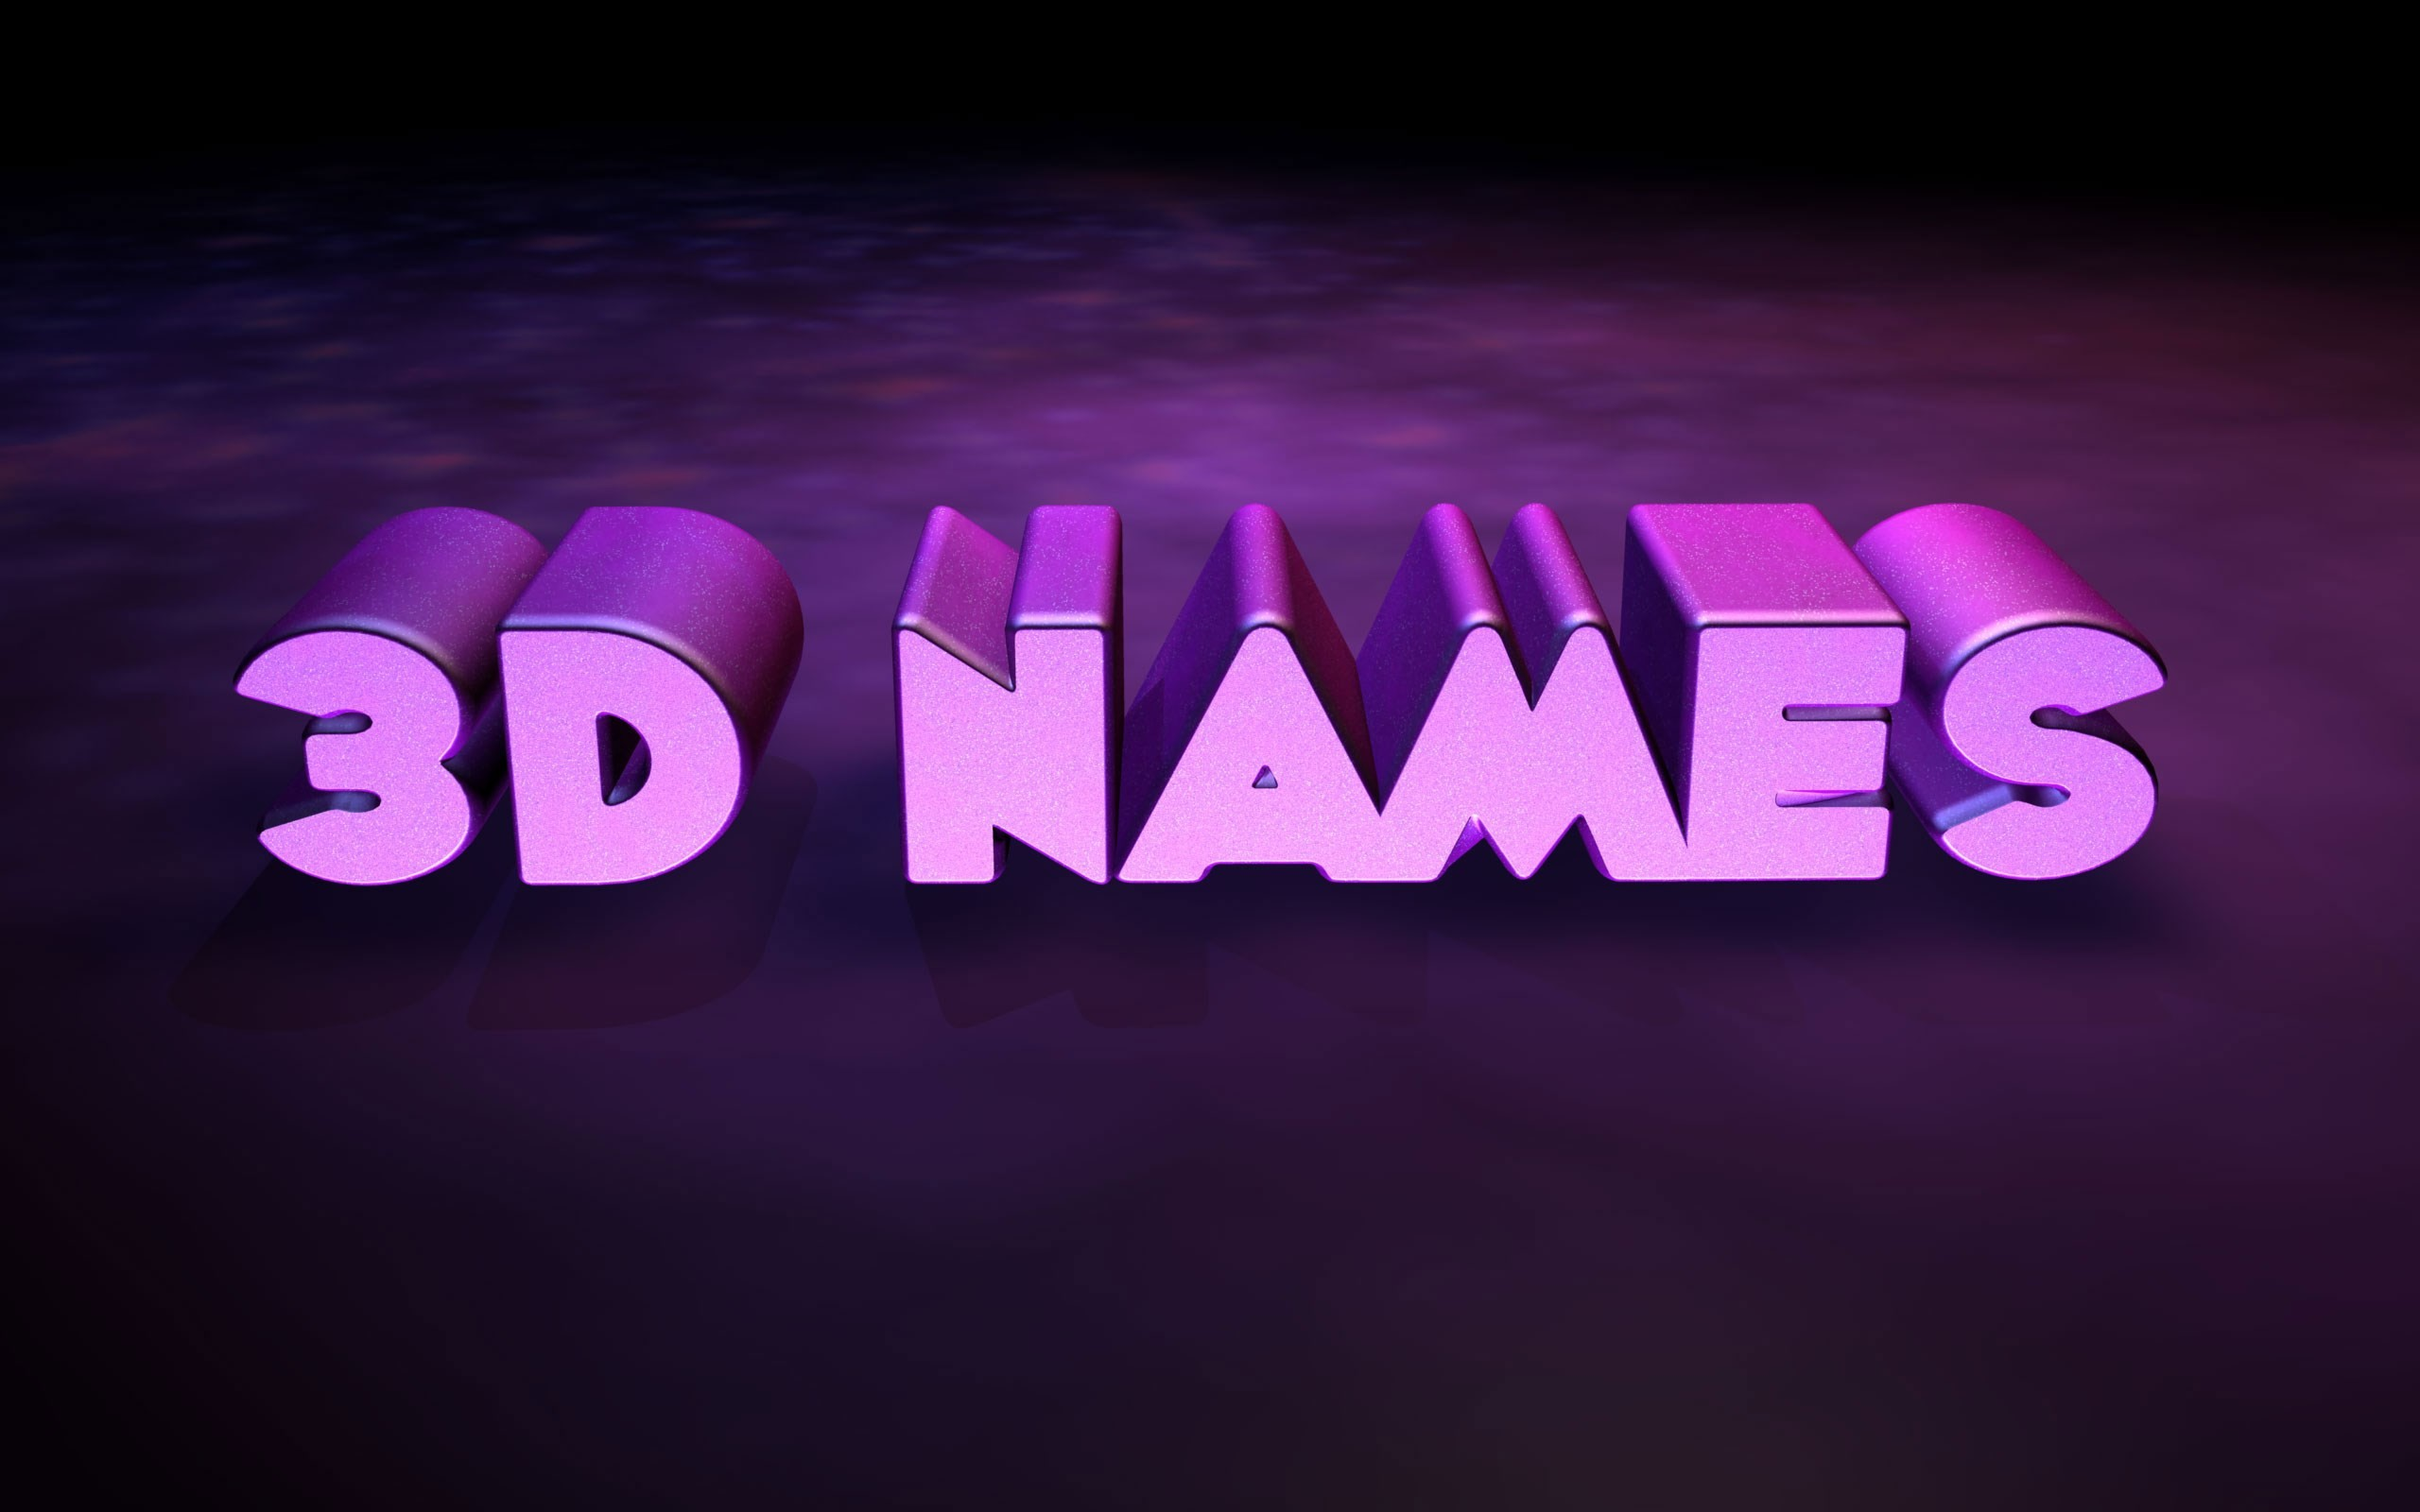 3d names wallpaper (52+ images)